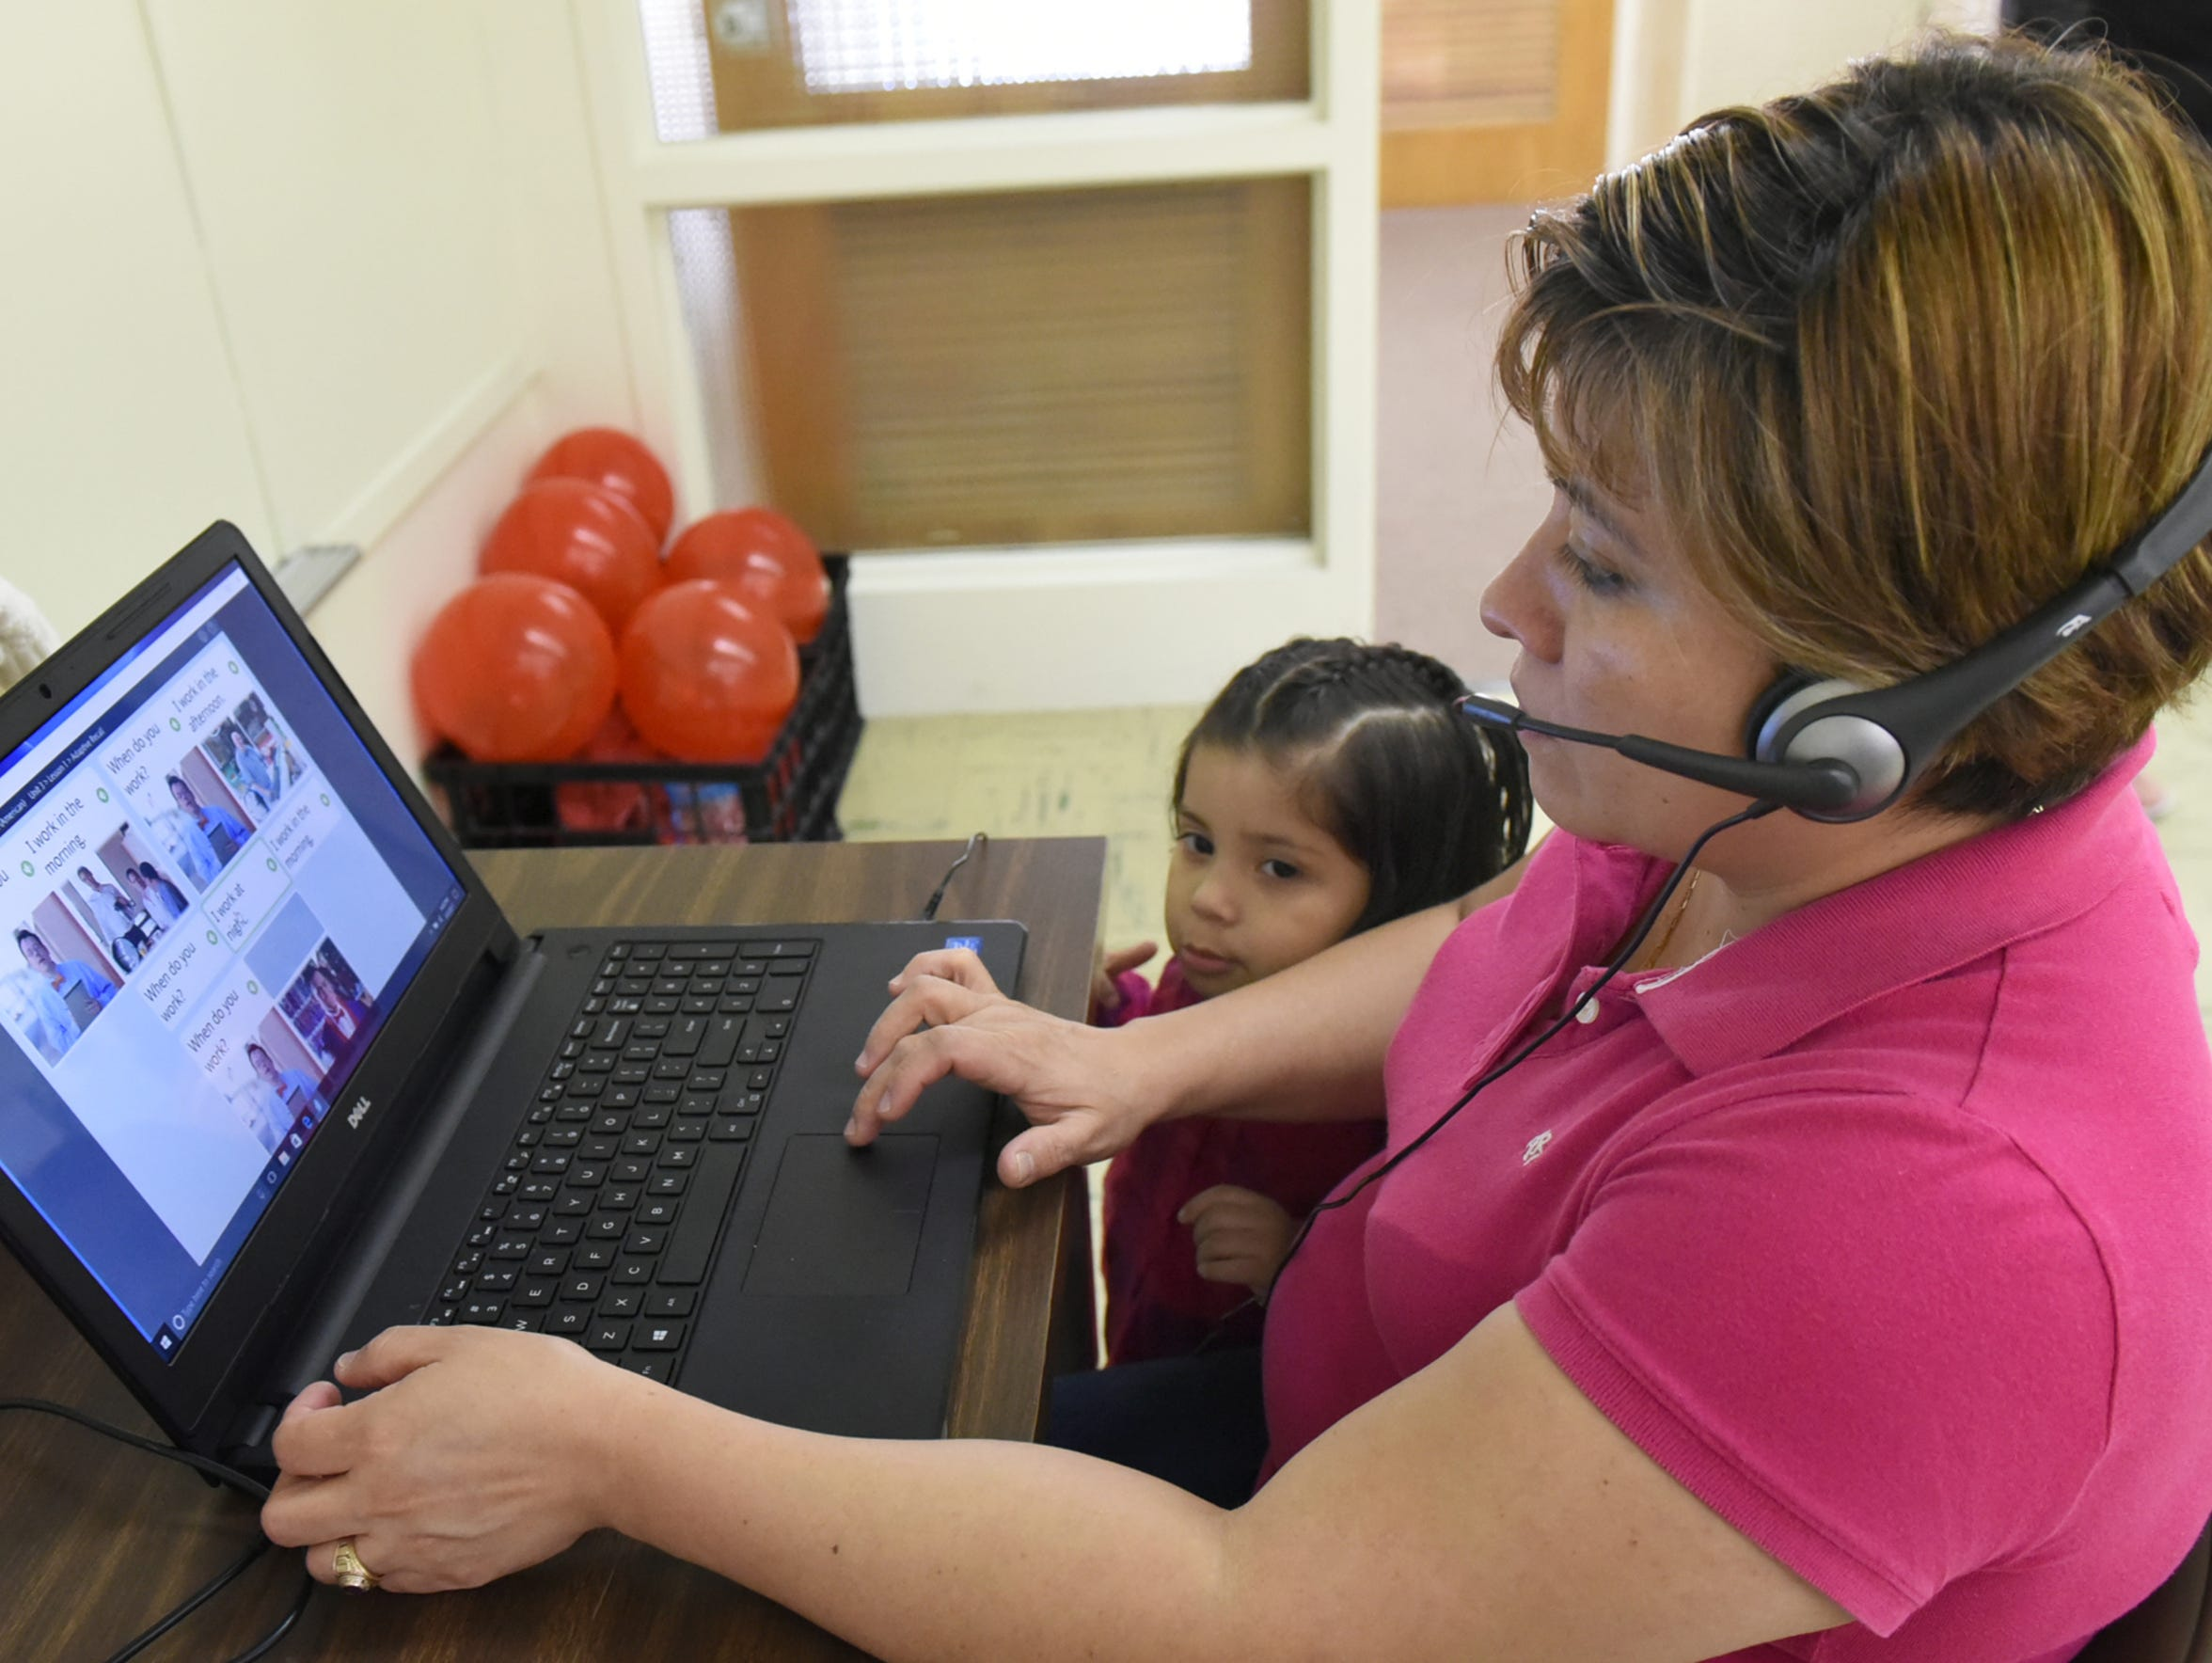 Janice CiFuentes uses a computer to study English at